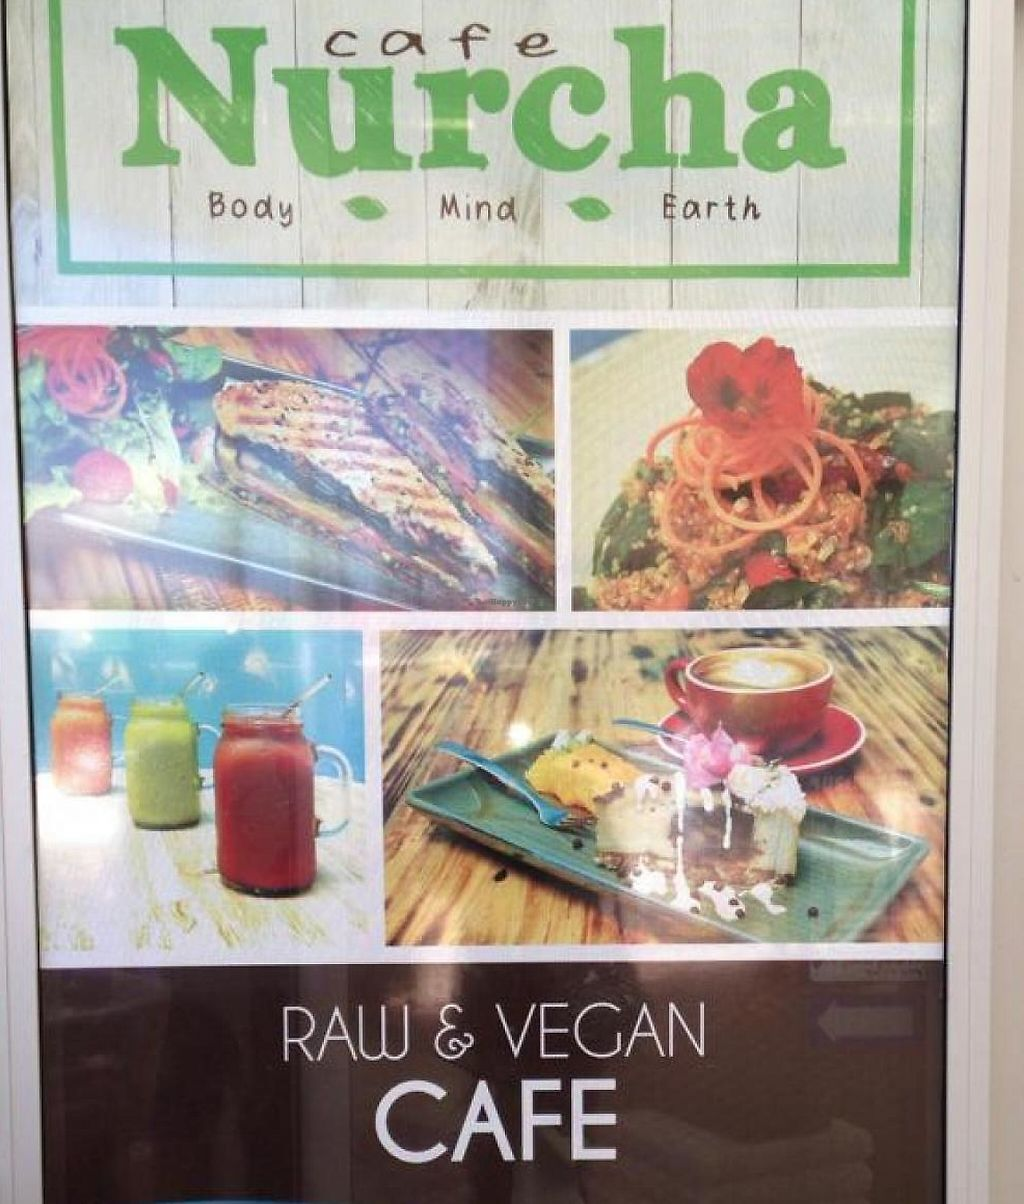 """Photo of Cafe Nurcha  by <a href=""""/members/profile/vegan%20louise"""">vegan louise</a> <br/>Cafe Nurcha sgin <br/> July 23, 2015  - <a href='/contact/abuse/image/52248/254676'>Report</a>"""